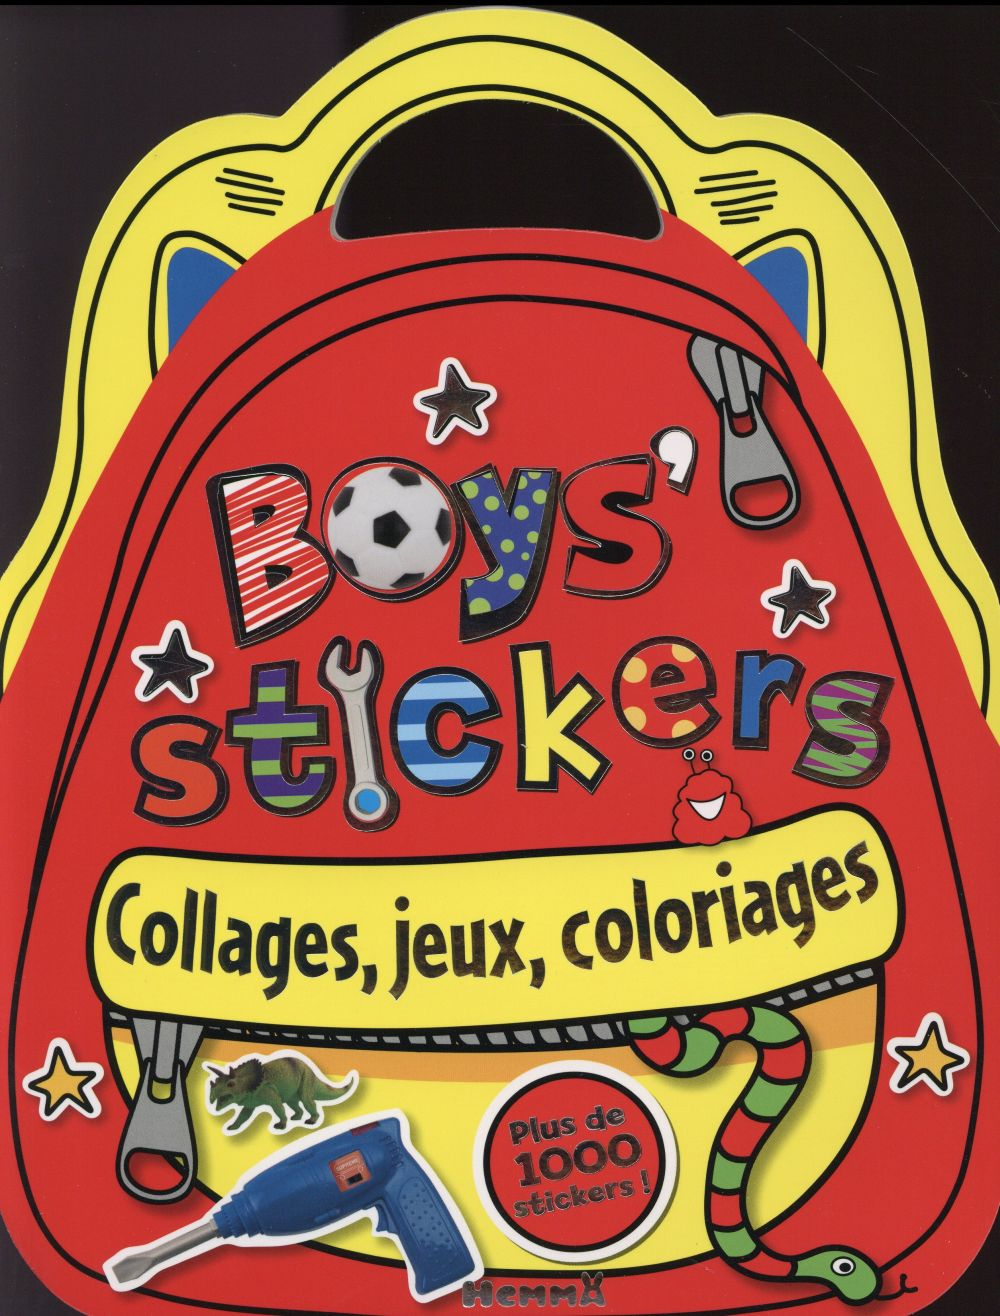 BOYS STICKERS COLLAGES, JEUX, COLORIAGES